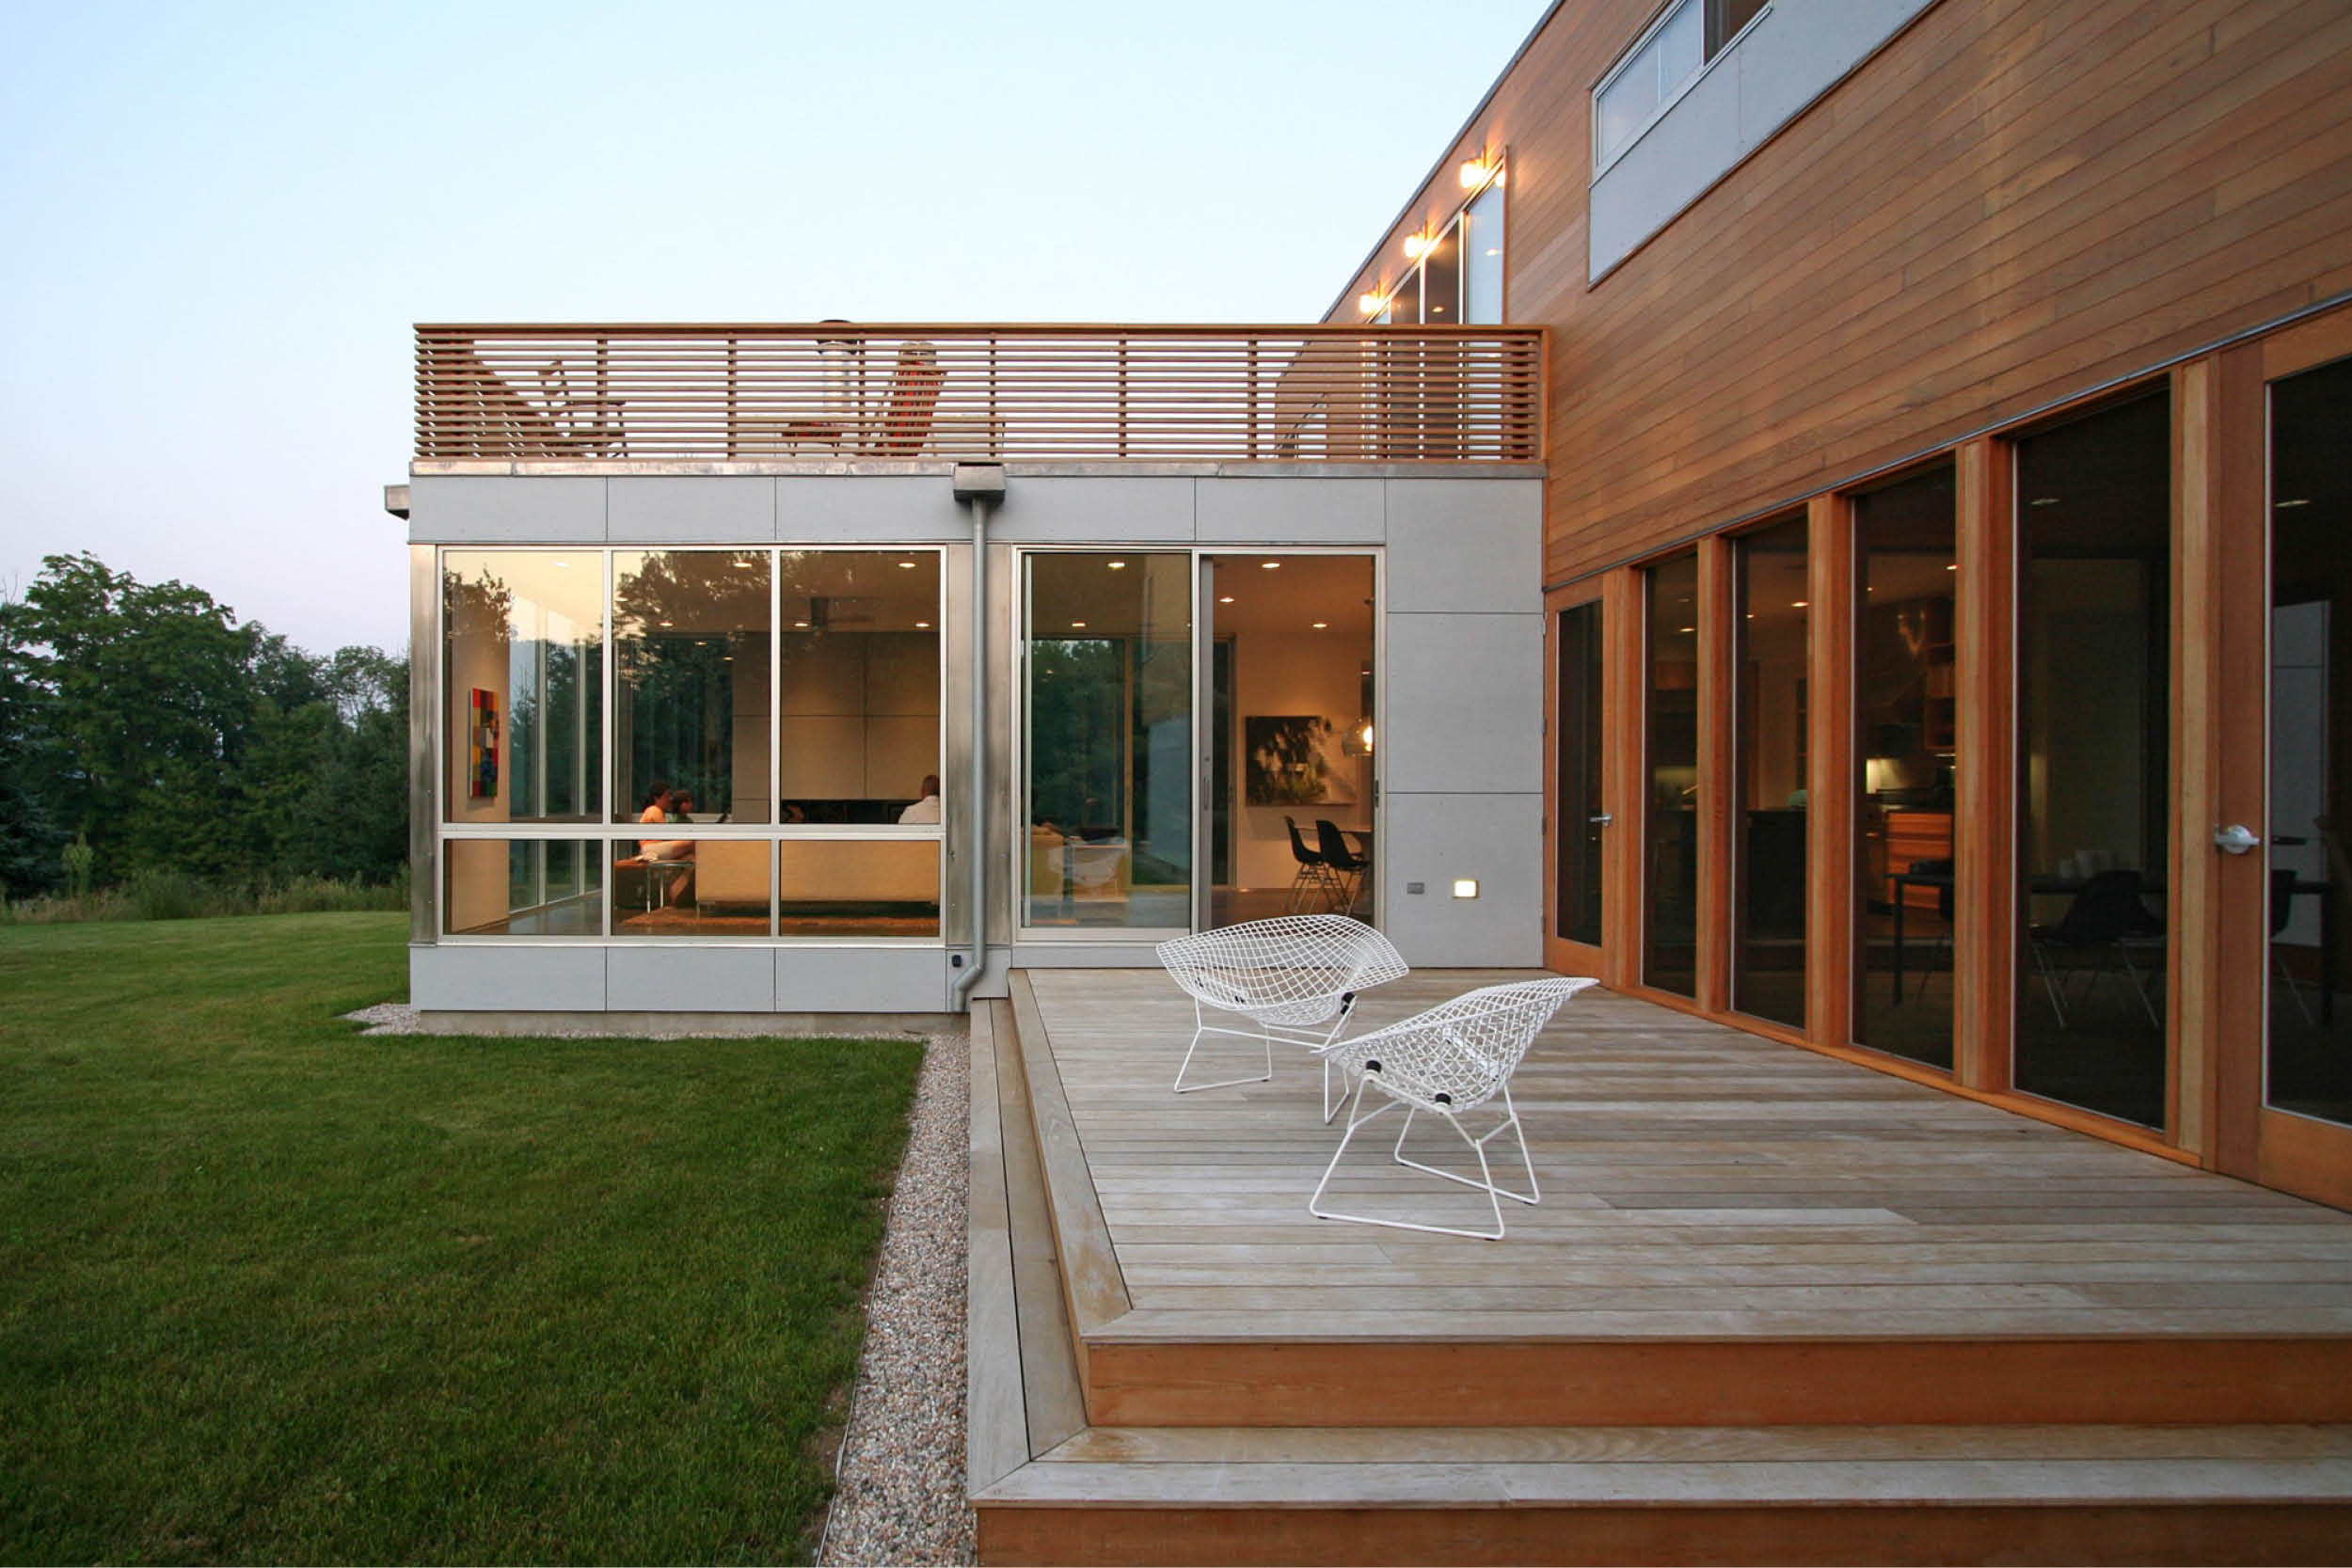 04-res4-resolution-4-architecture-modern-modular-home-prefab-sunset-ridge-house-exterior.jpg